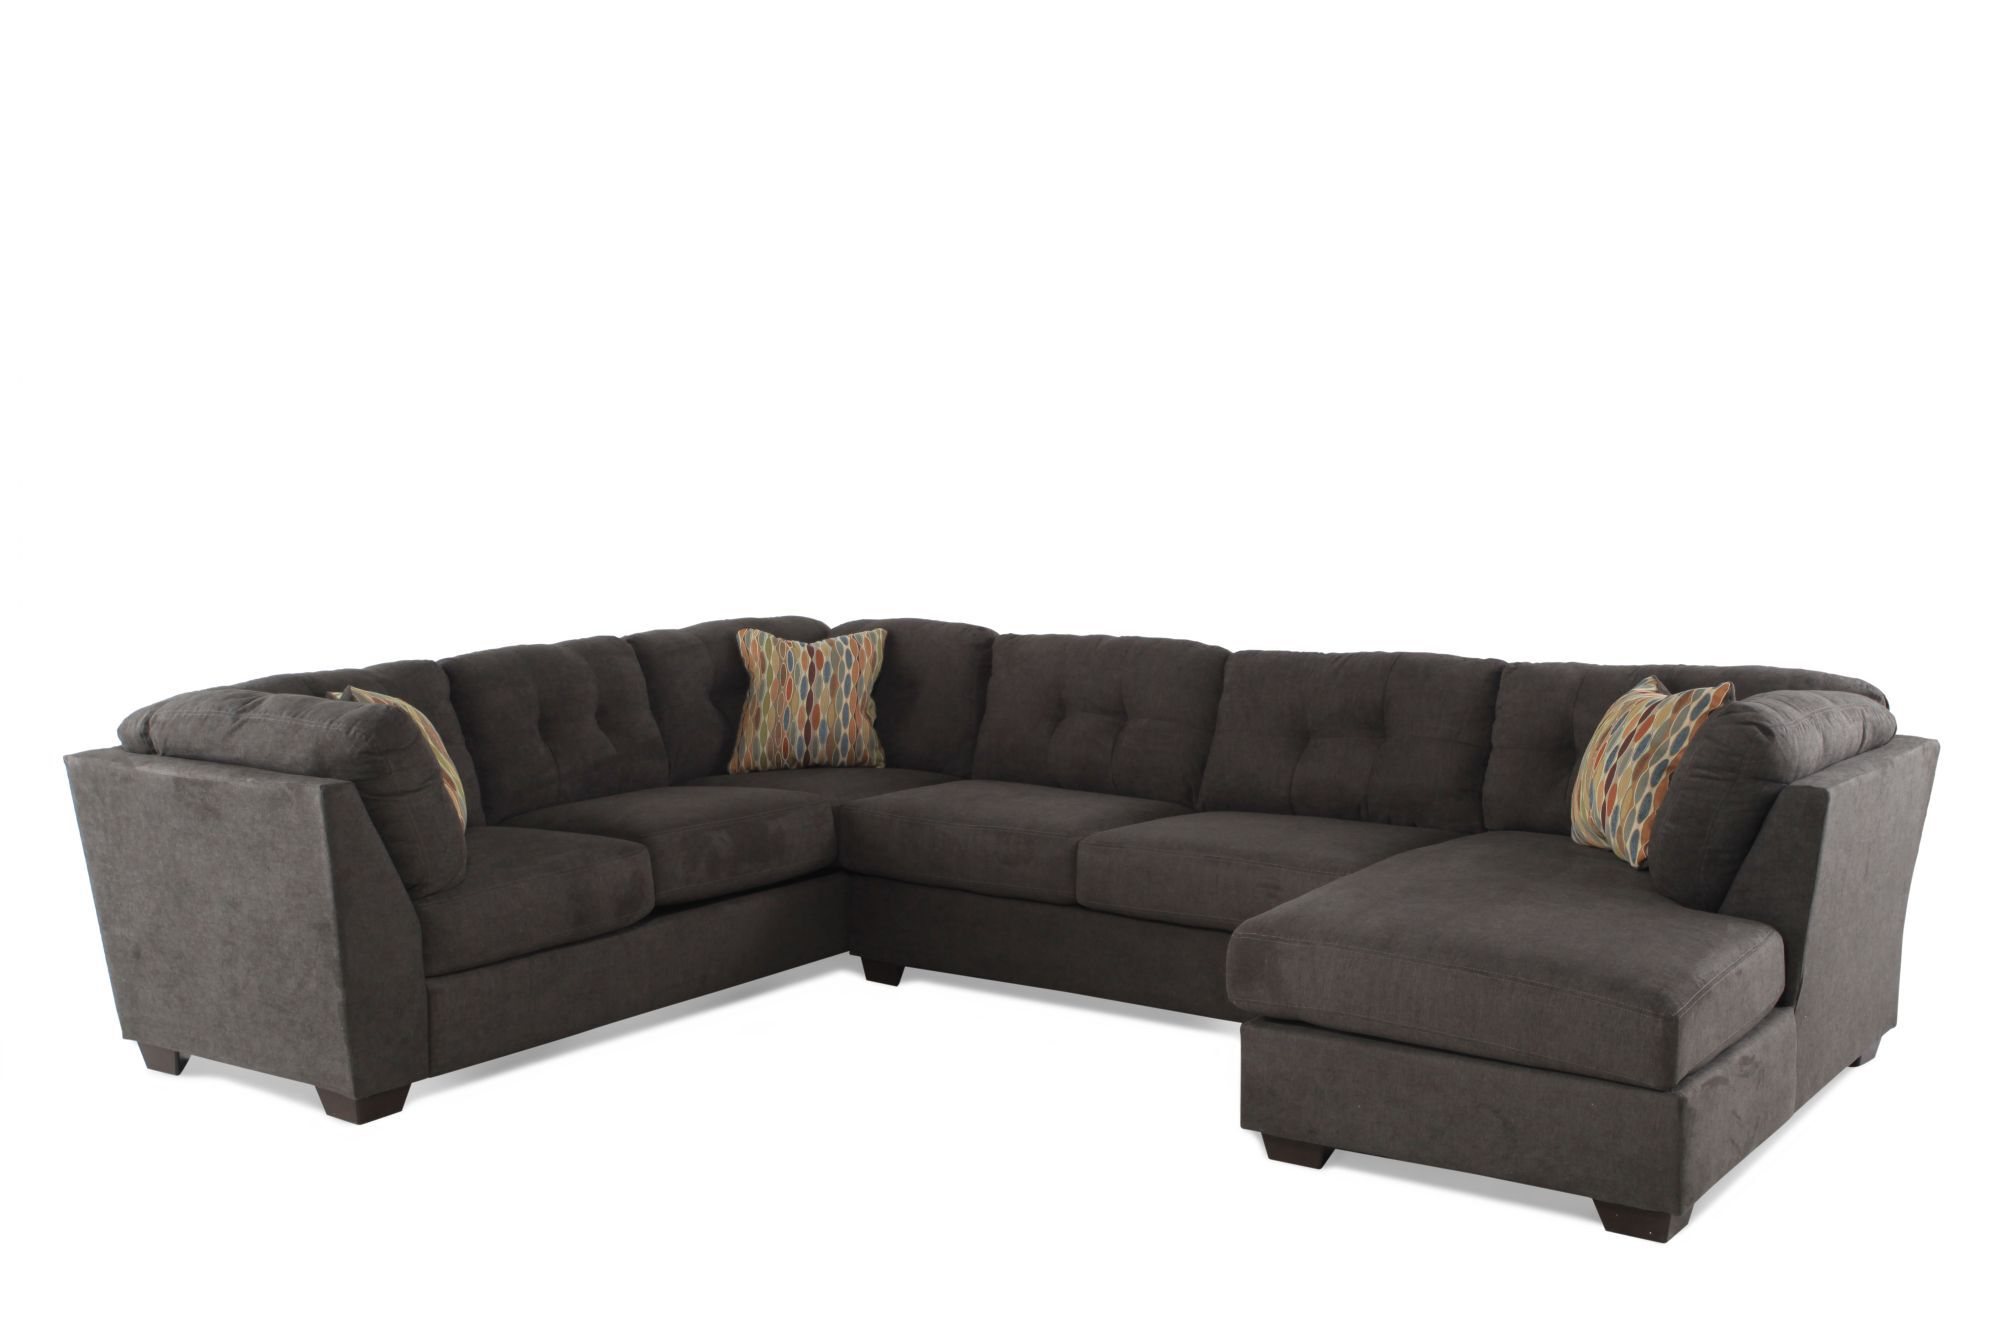 threepiece microfiber sectional in chocolate brown